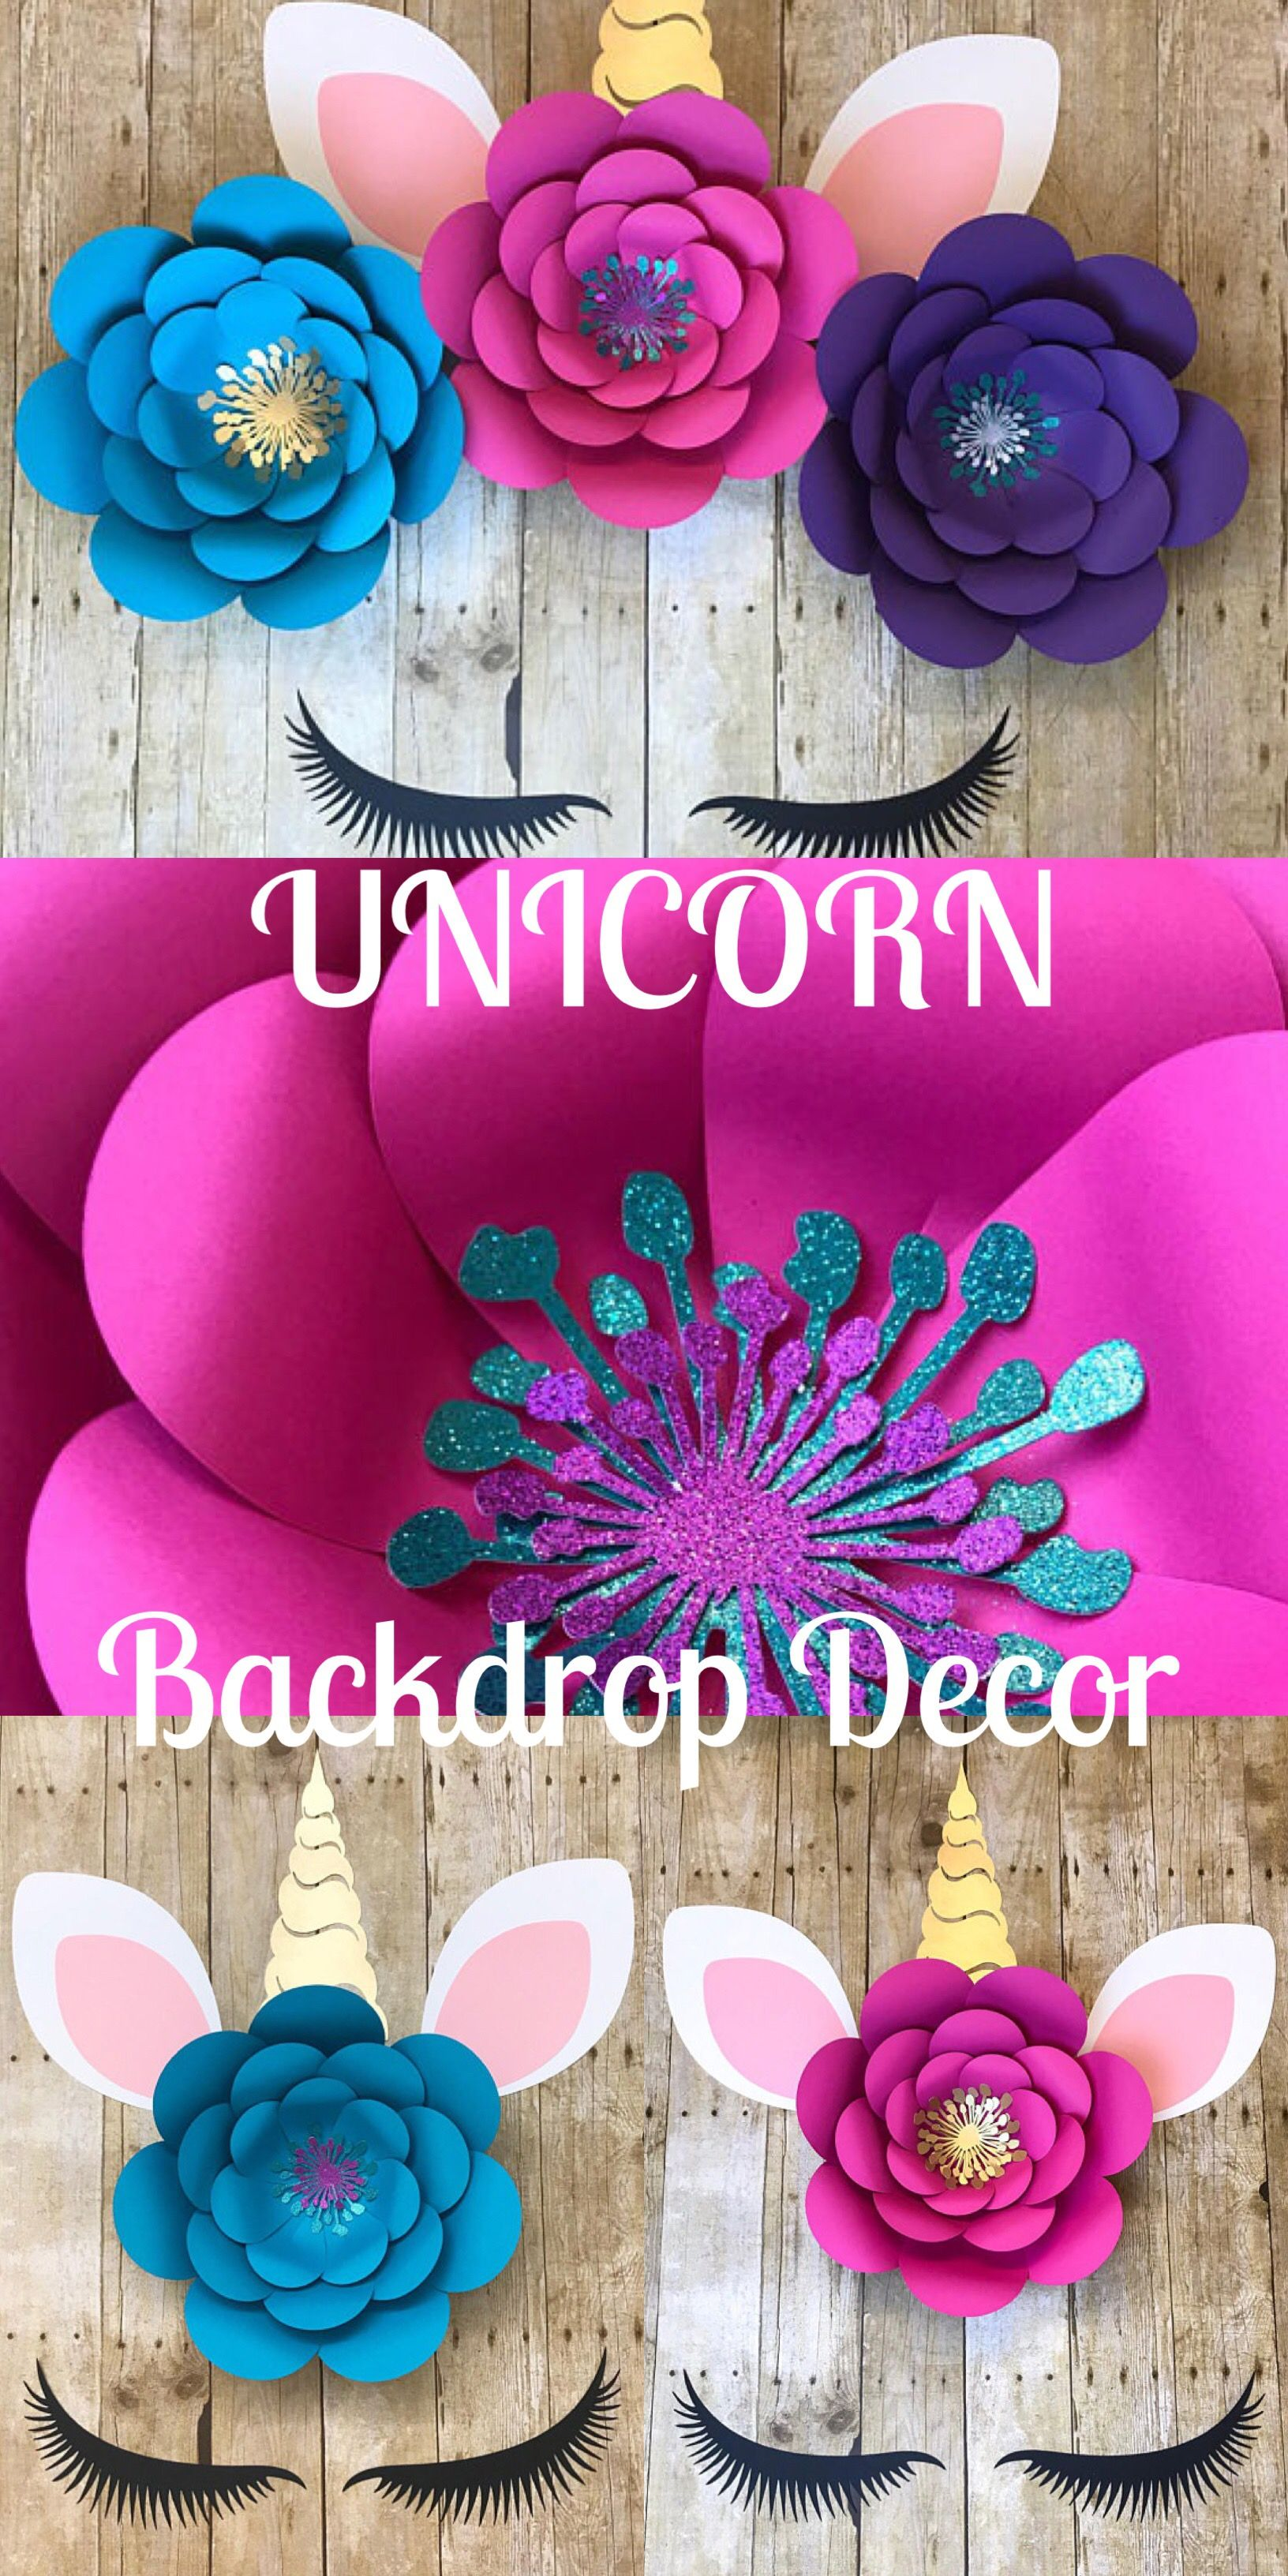 Stunning Backdrop Decor For Your Little Girls Unicorn Party